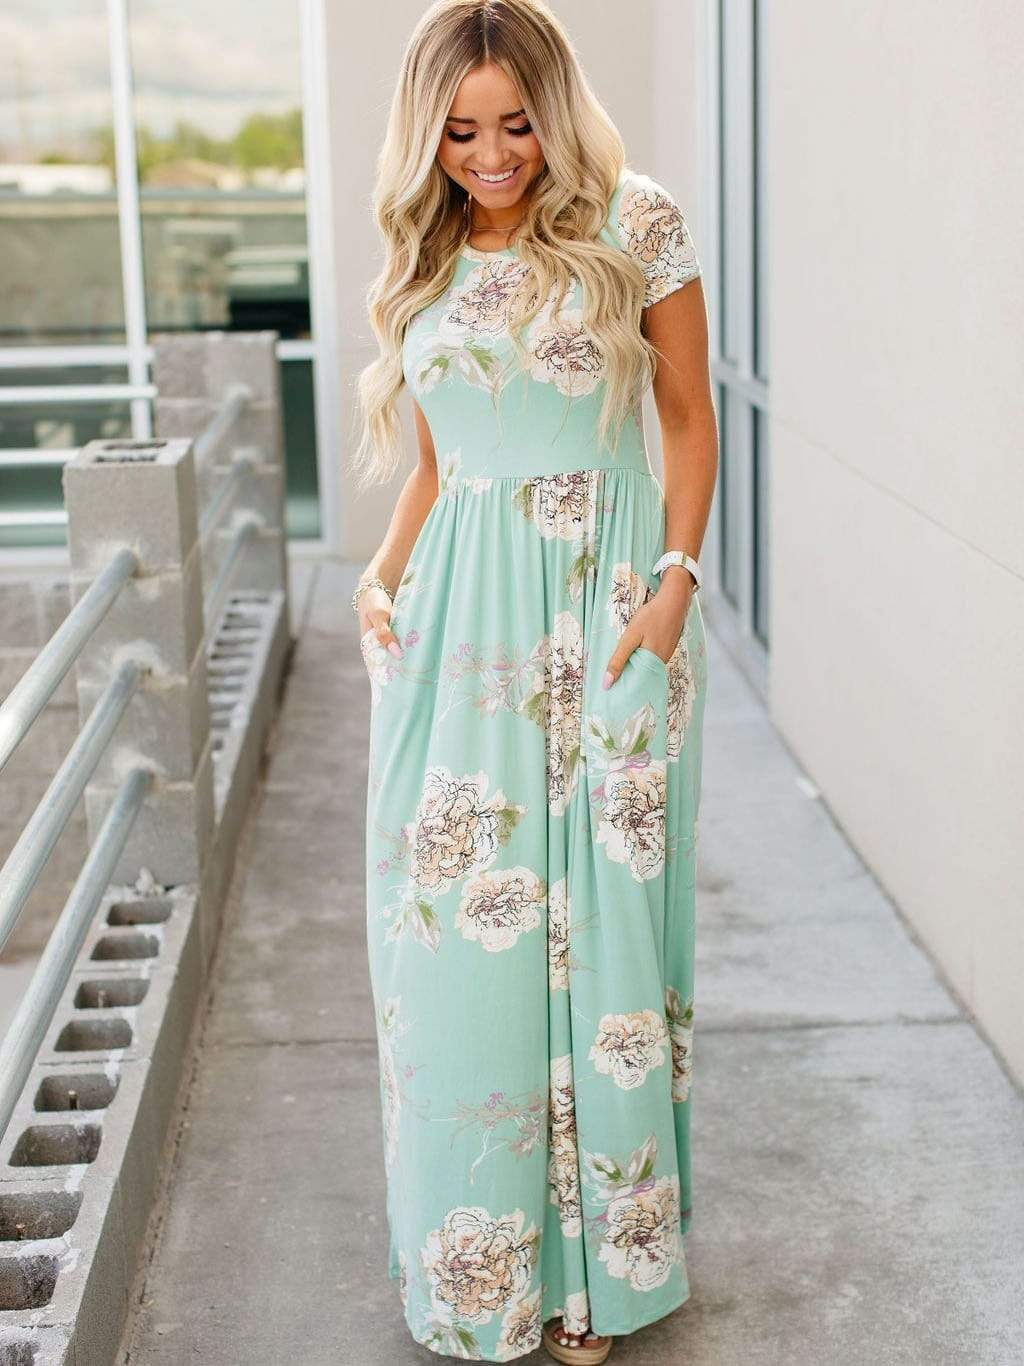 Floral Print Maxi Dresses With Pockets